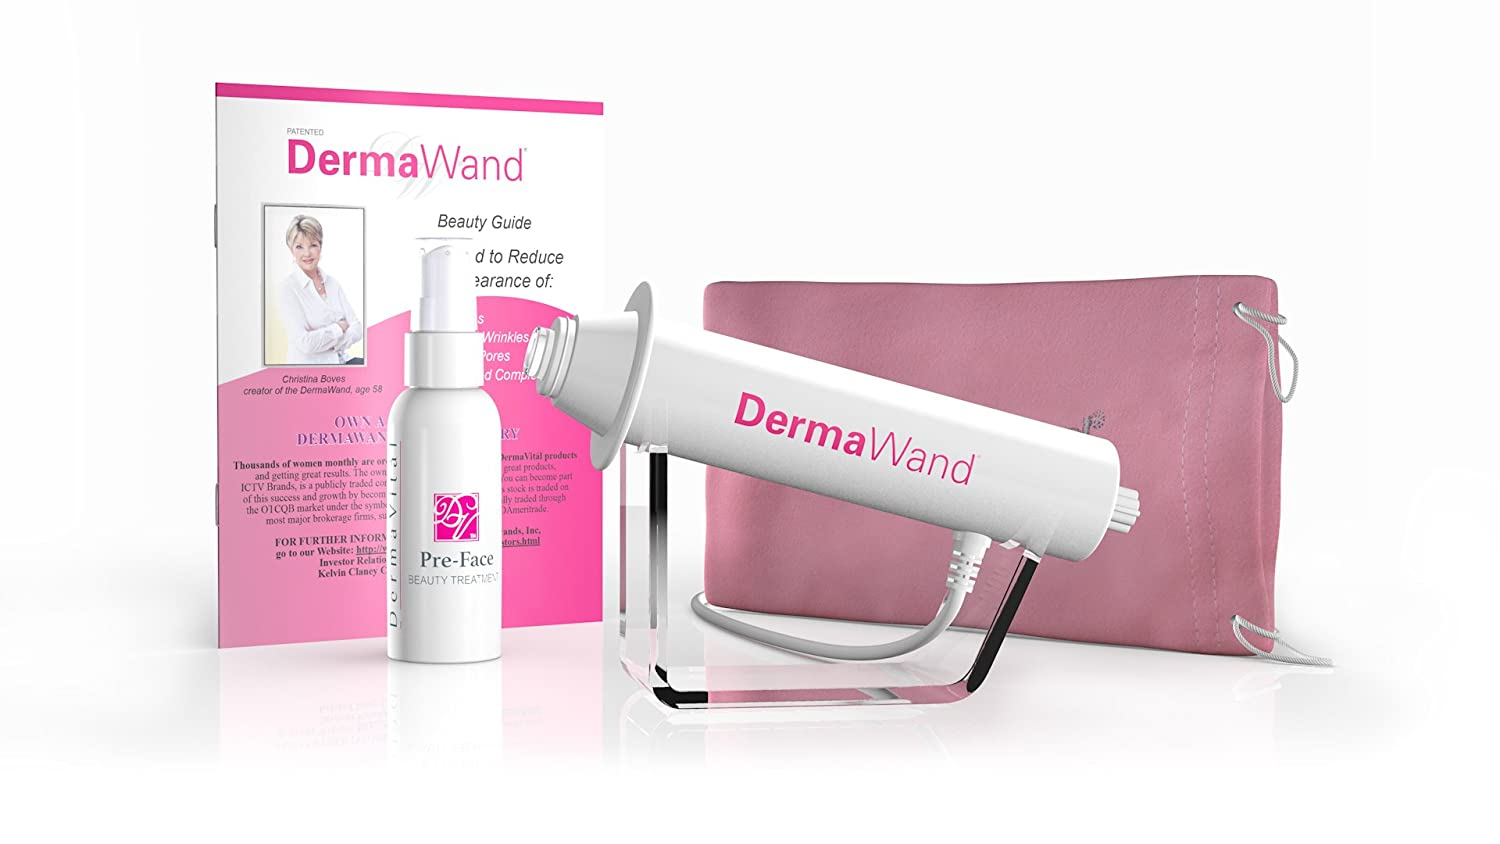 Dermawand Ultimate Anti Aging System - Reduces Appearance Of Wrinkles, 1 Count